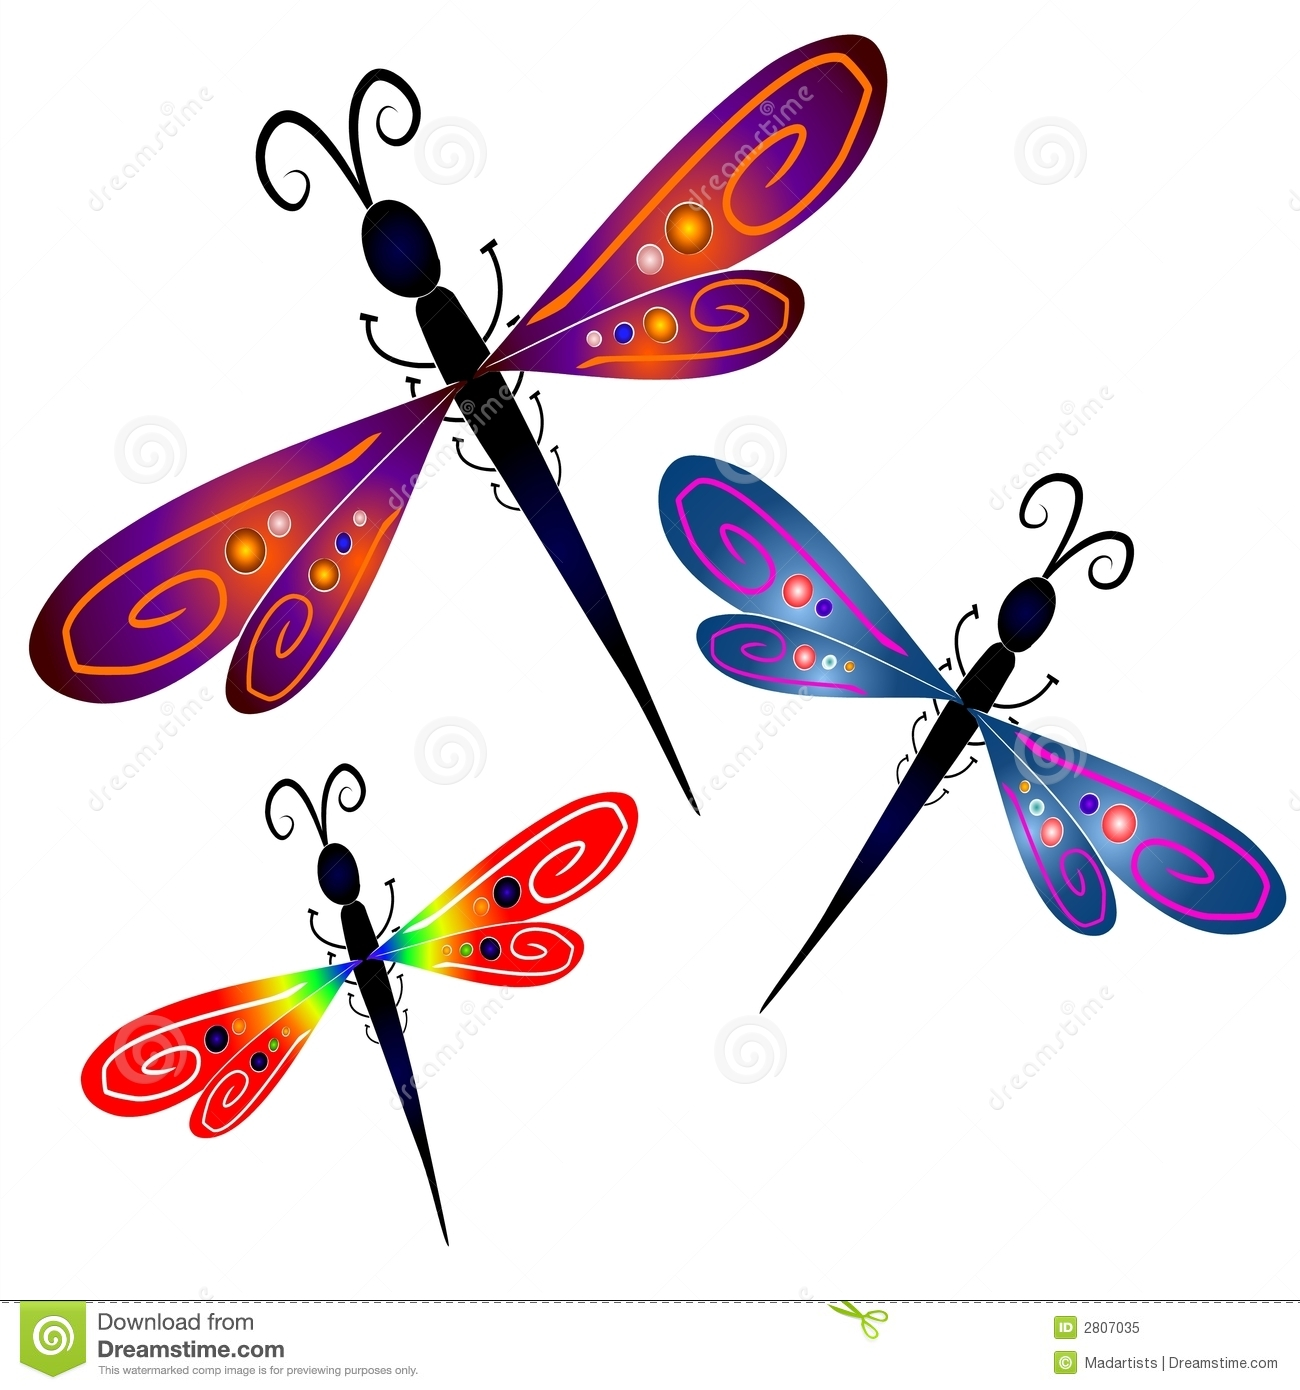 Dragonfly Stock Illustrations.